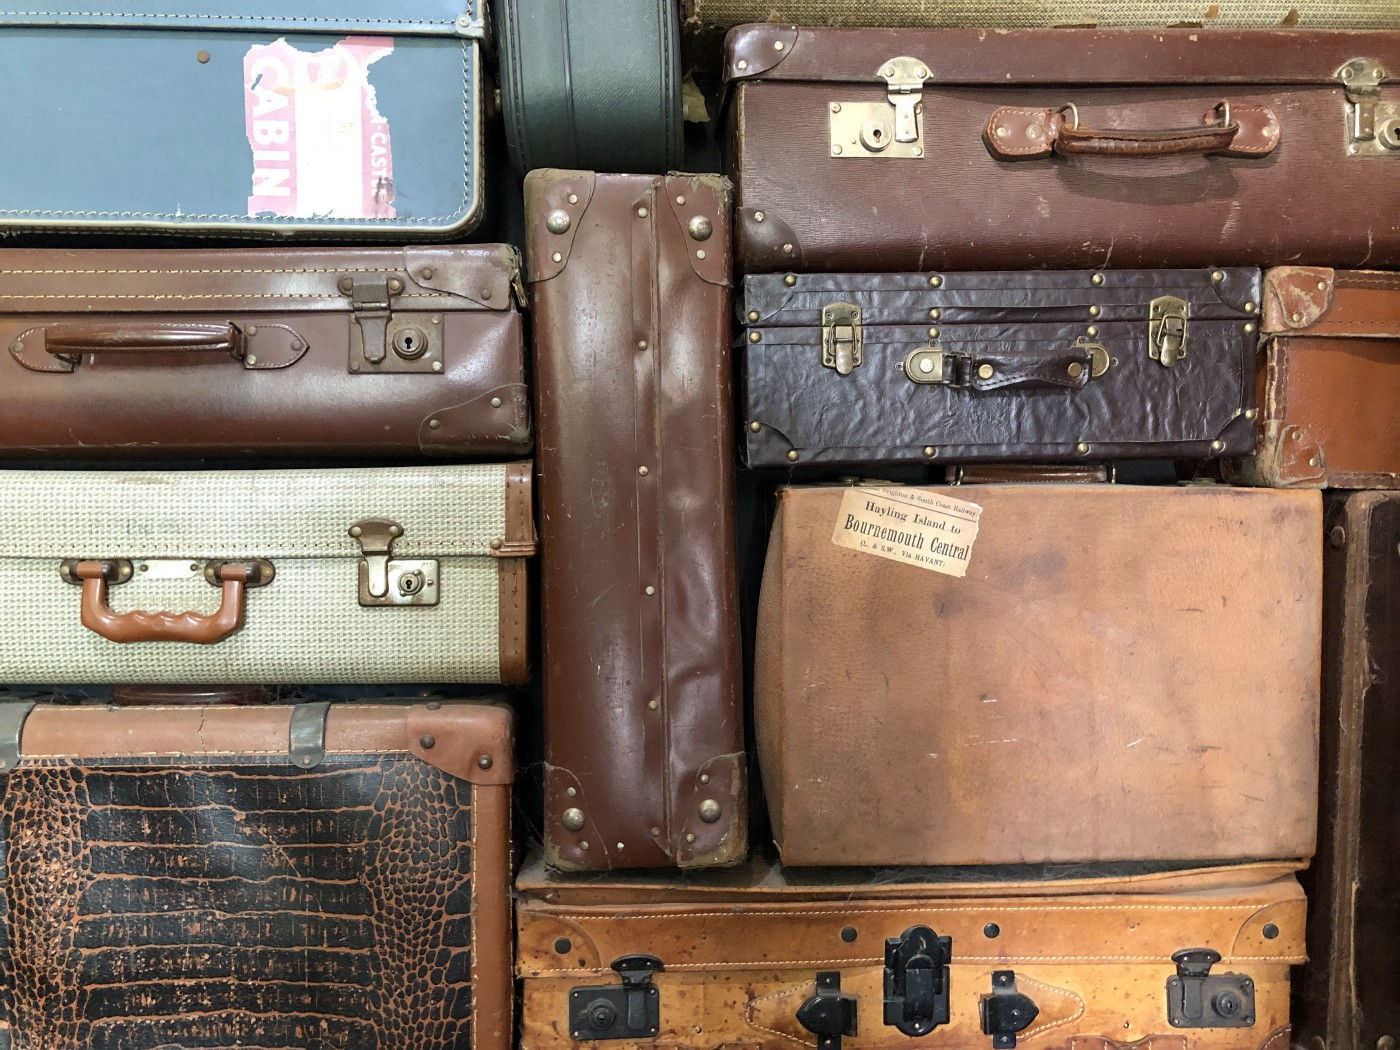 Stack of vintage suitcases.